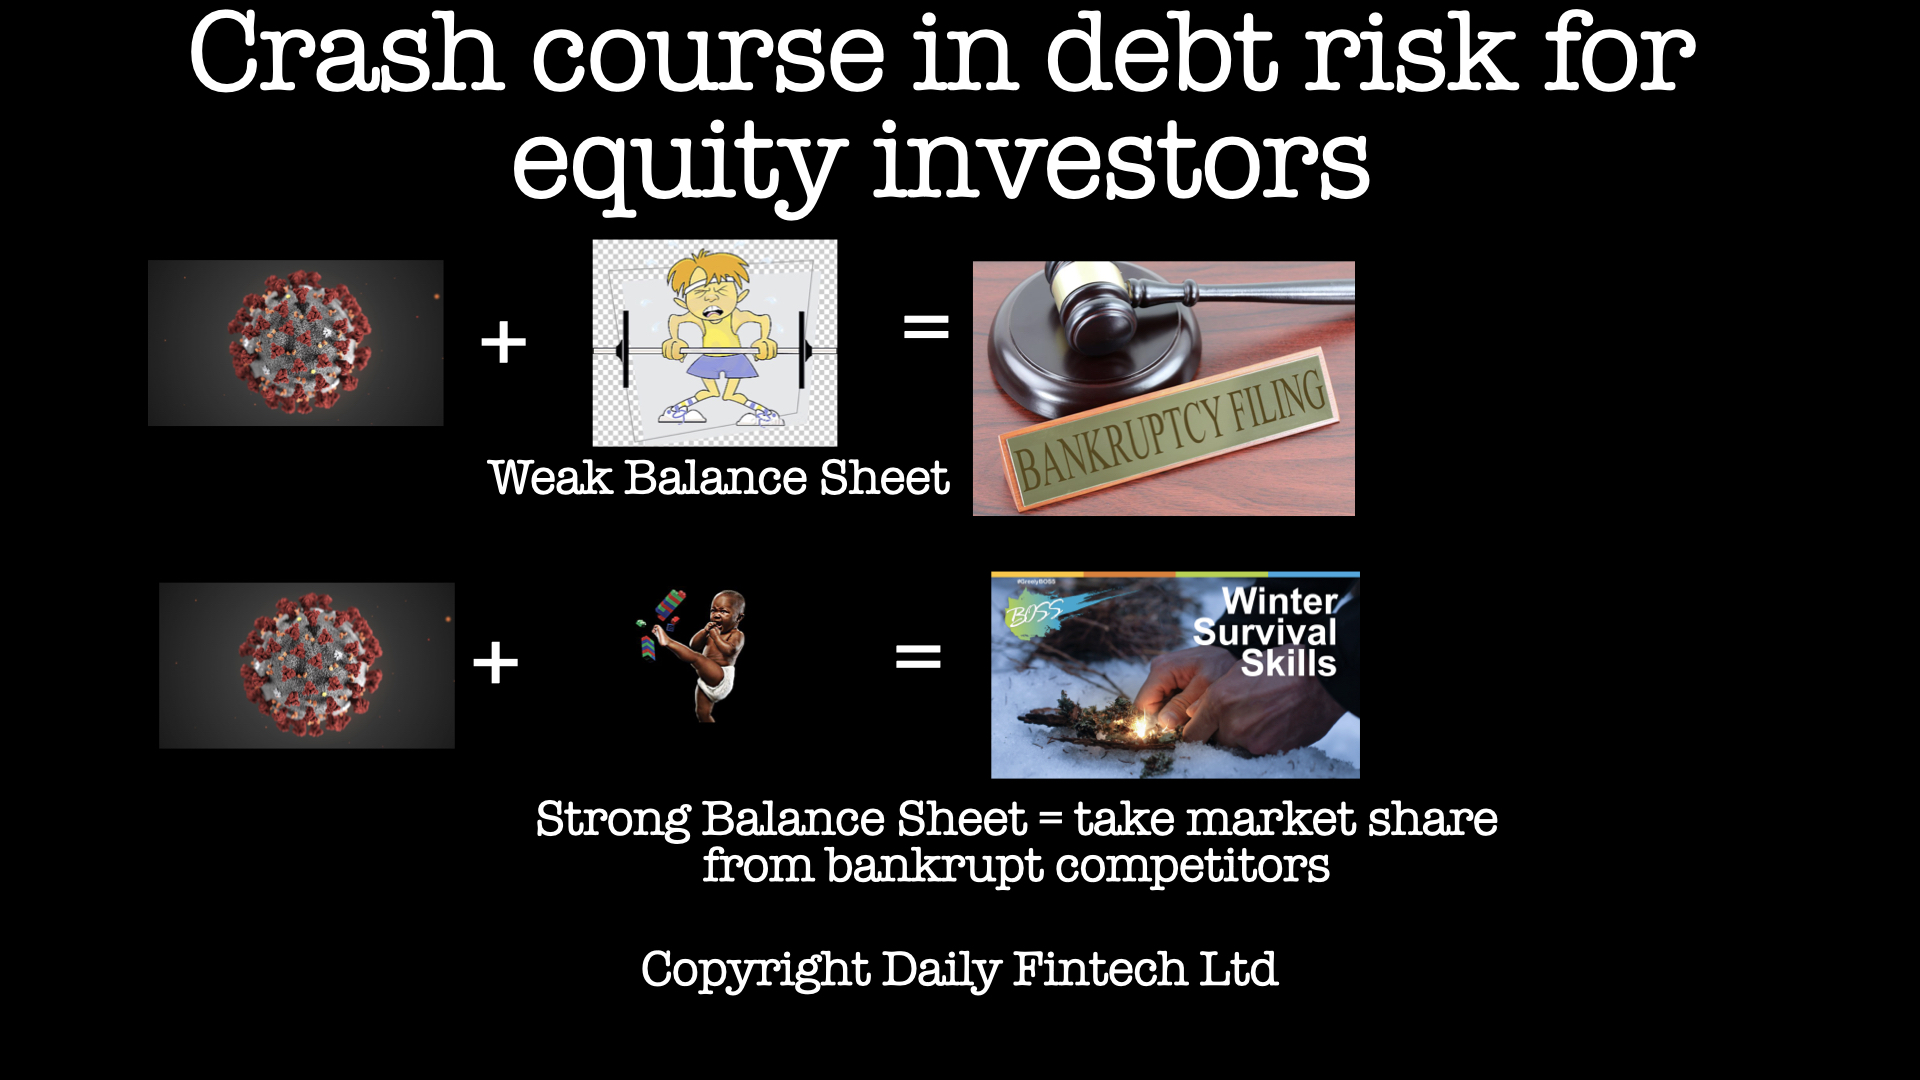 Why equity investors need a crash course in debt risk.